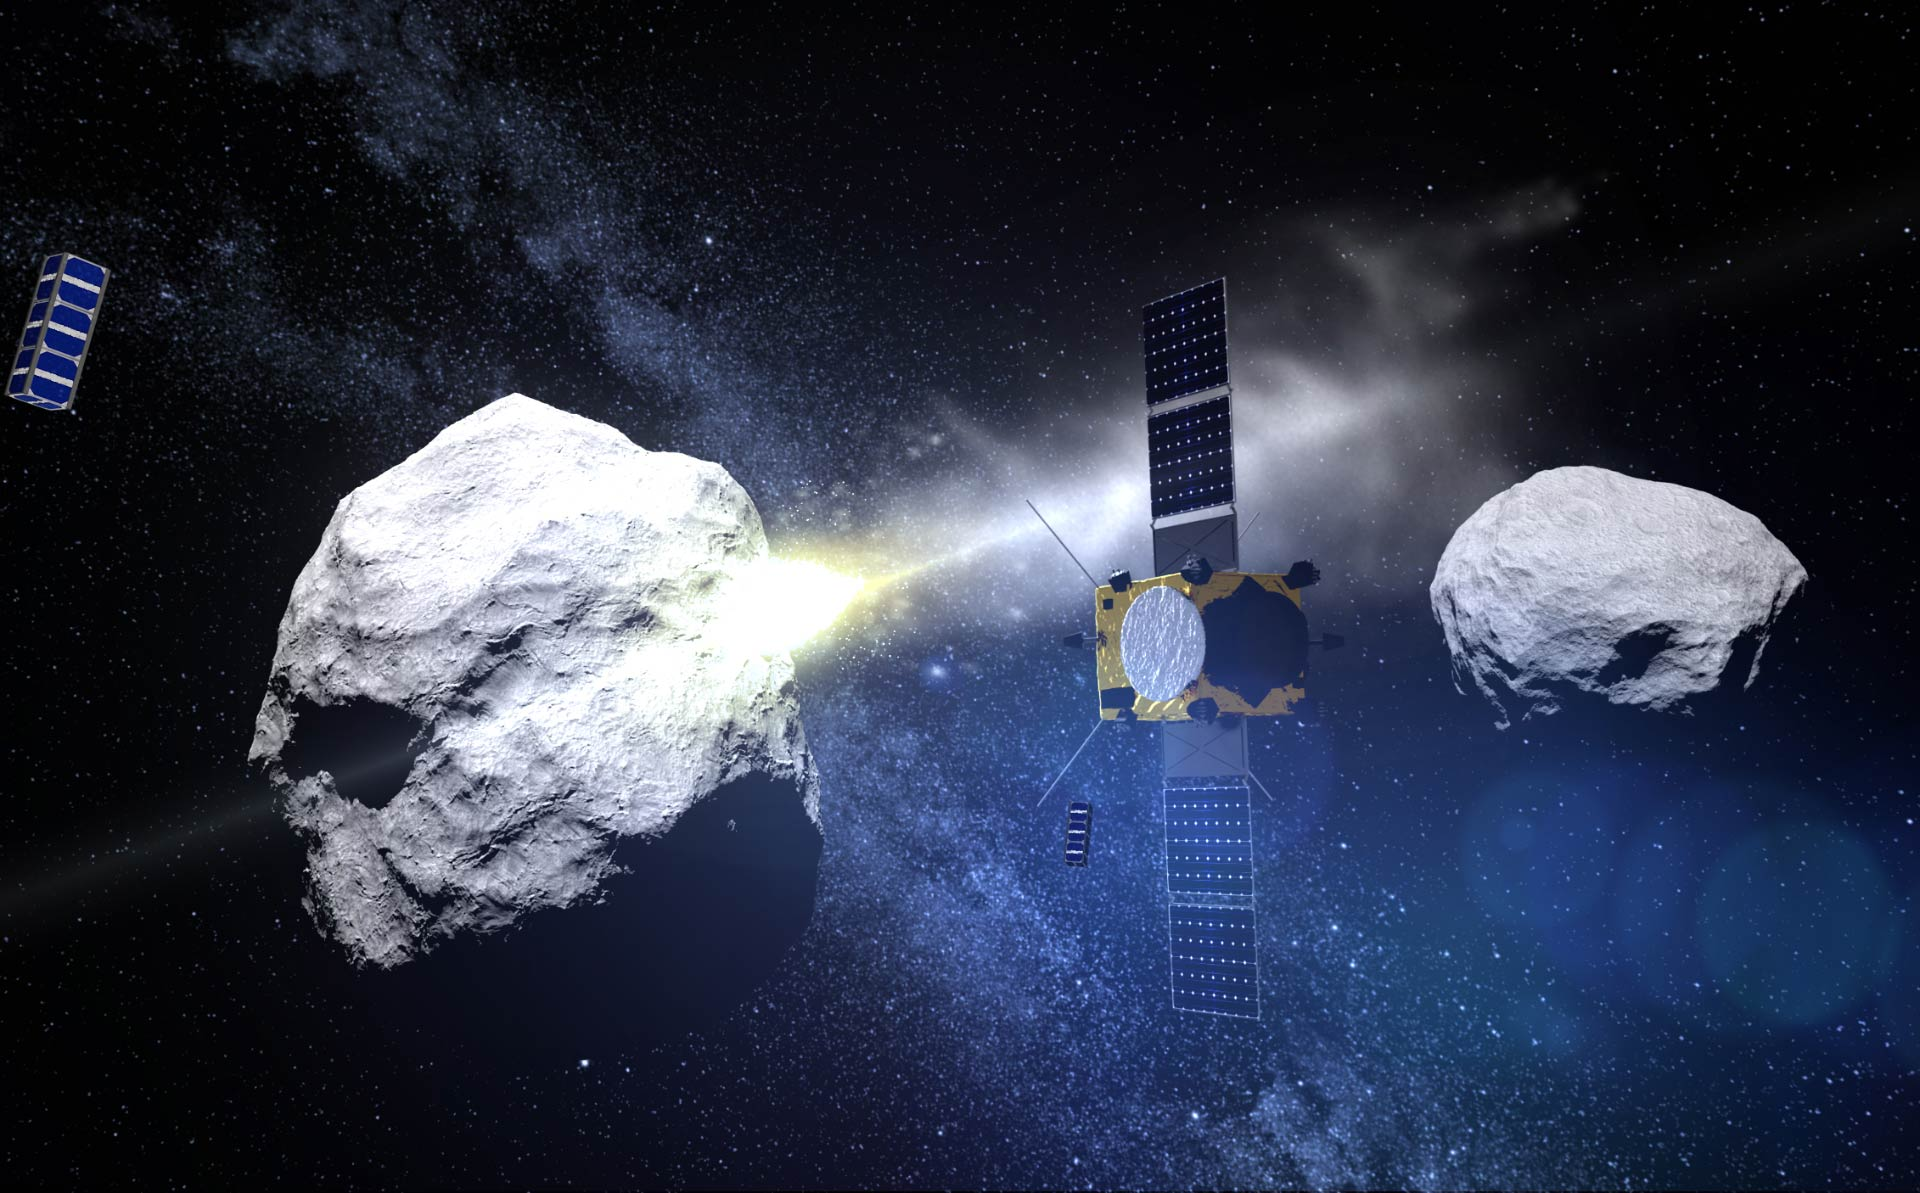 DART will try to repel asteroids from continuing their way towards the Earth. Image credit: ESA / Science Office / Sci-News